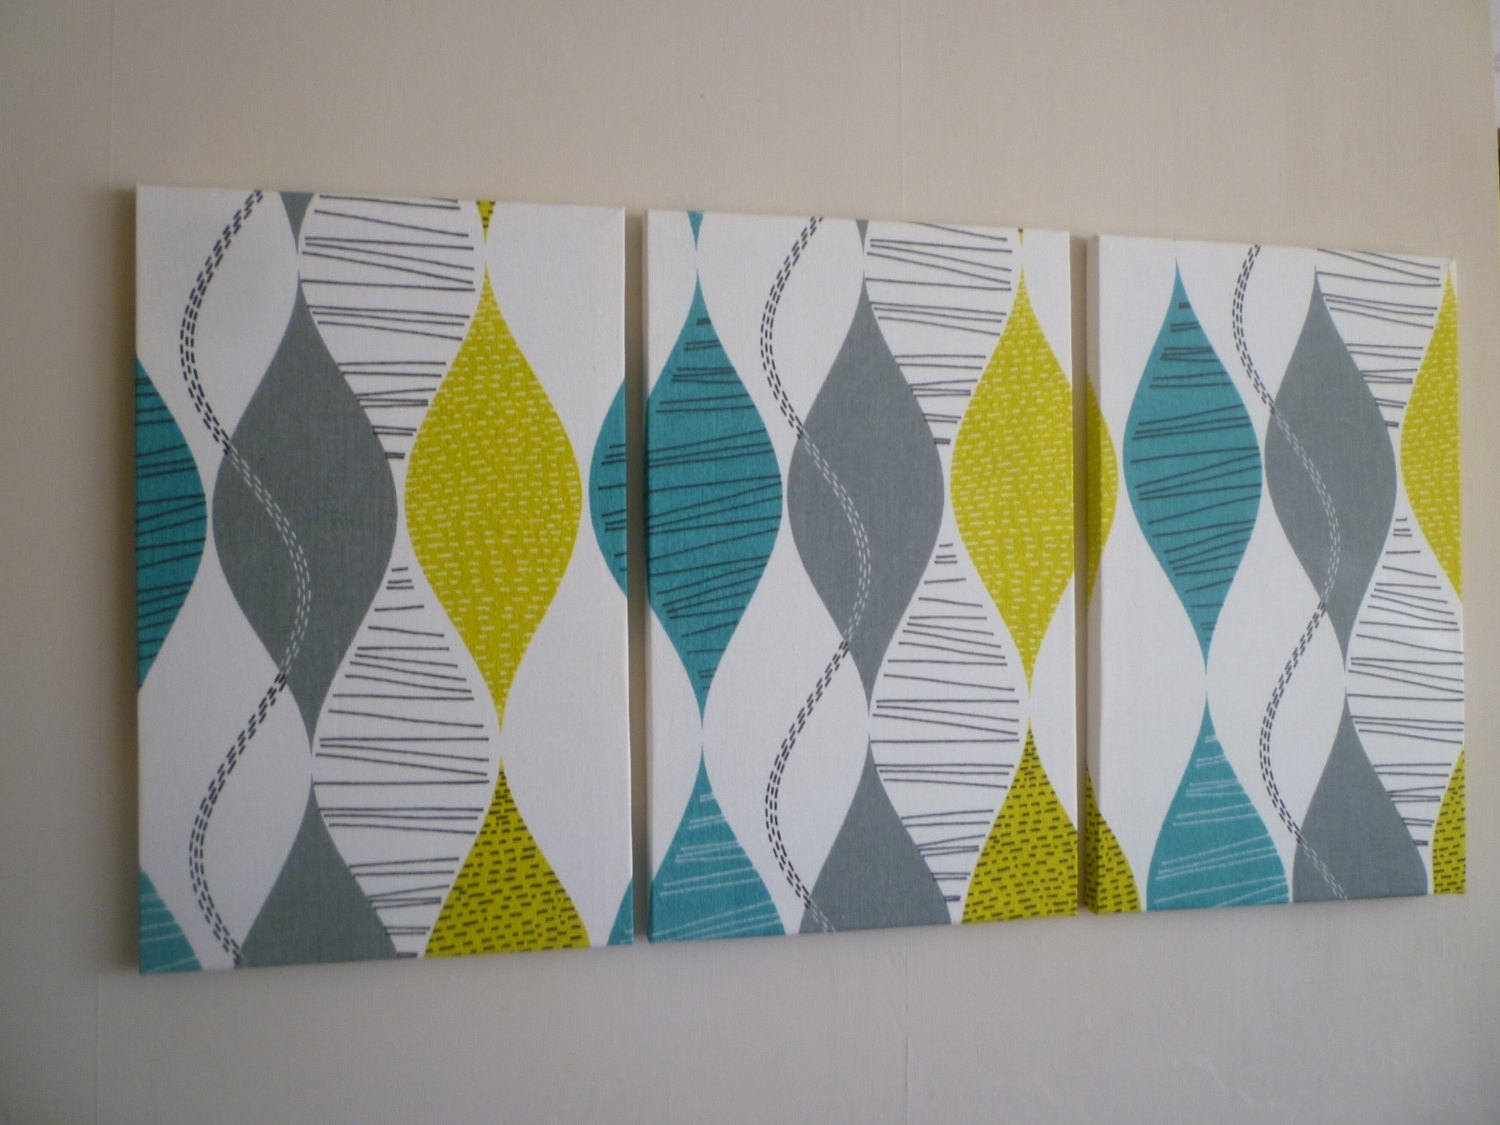 Big Fabric Wall Art Teal Lime Green Triptych 3 Piece Modern Intended For 2018 Modern Fabric Wall Art (View 1 of 15)